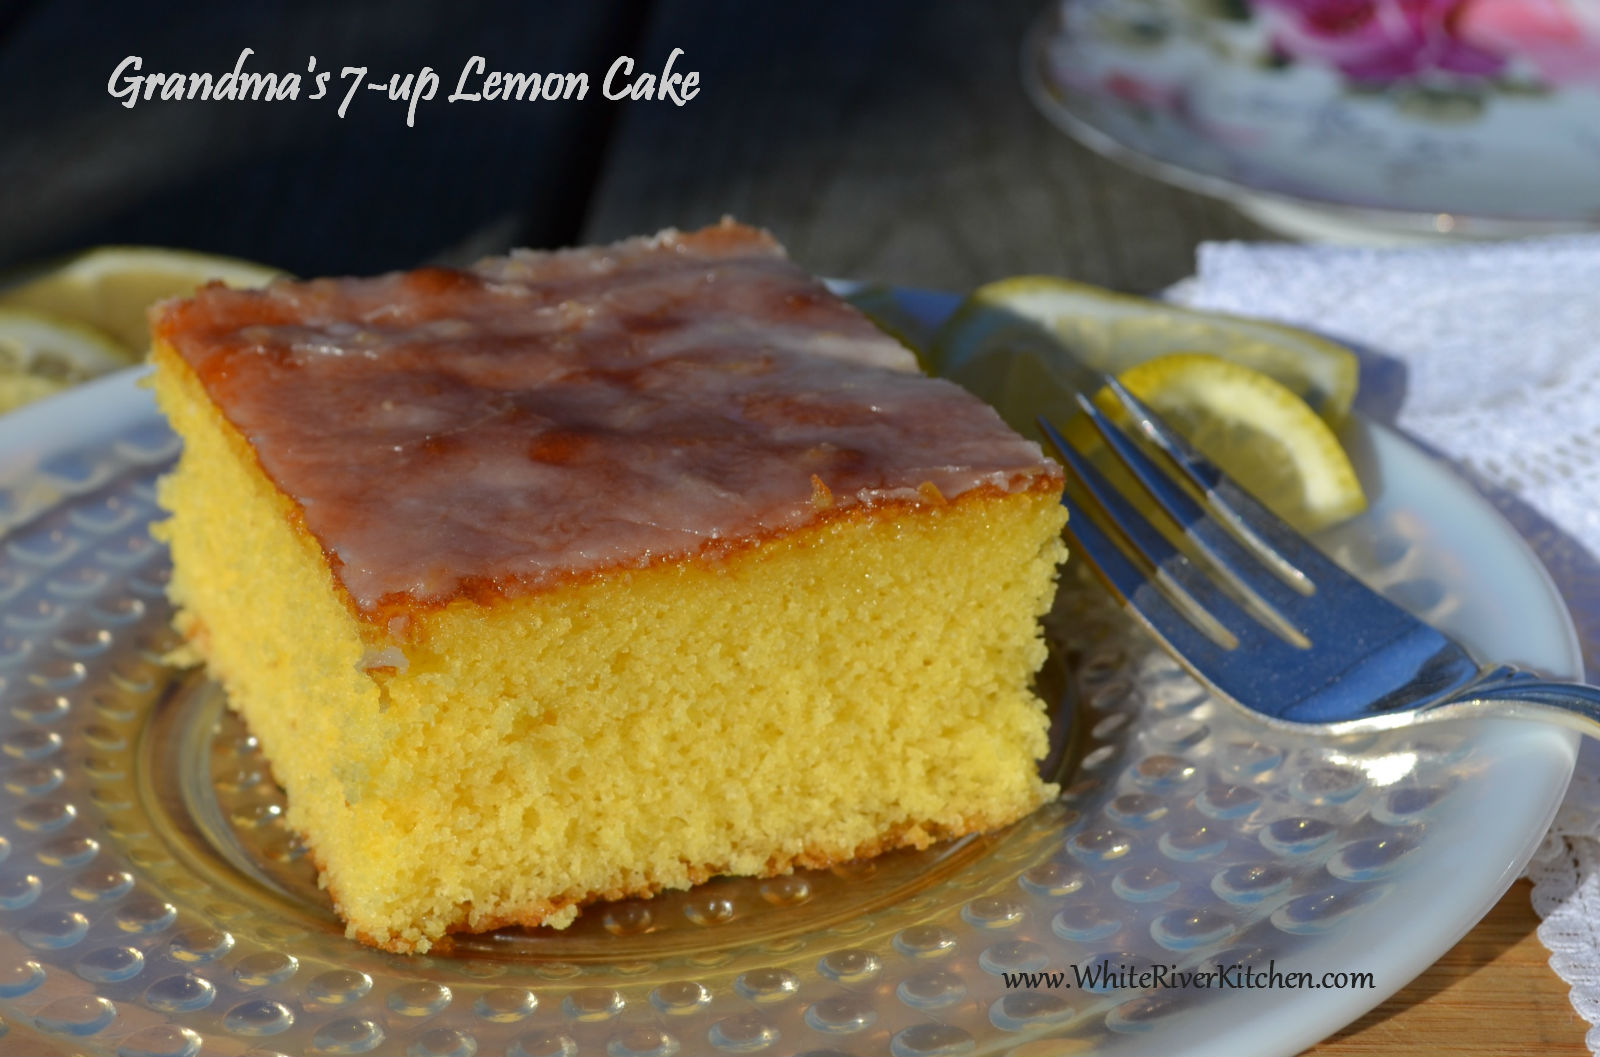 Grandma's 7-up Lemon Cake